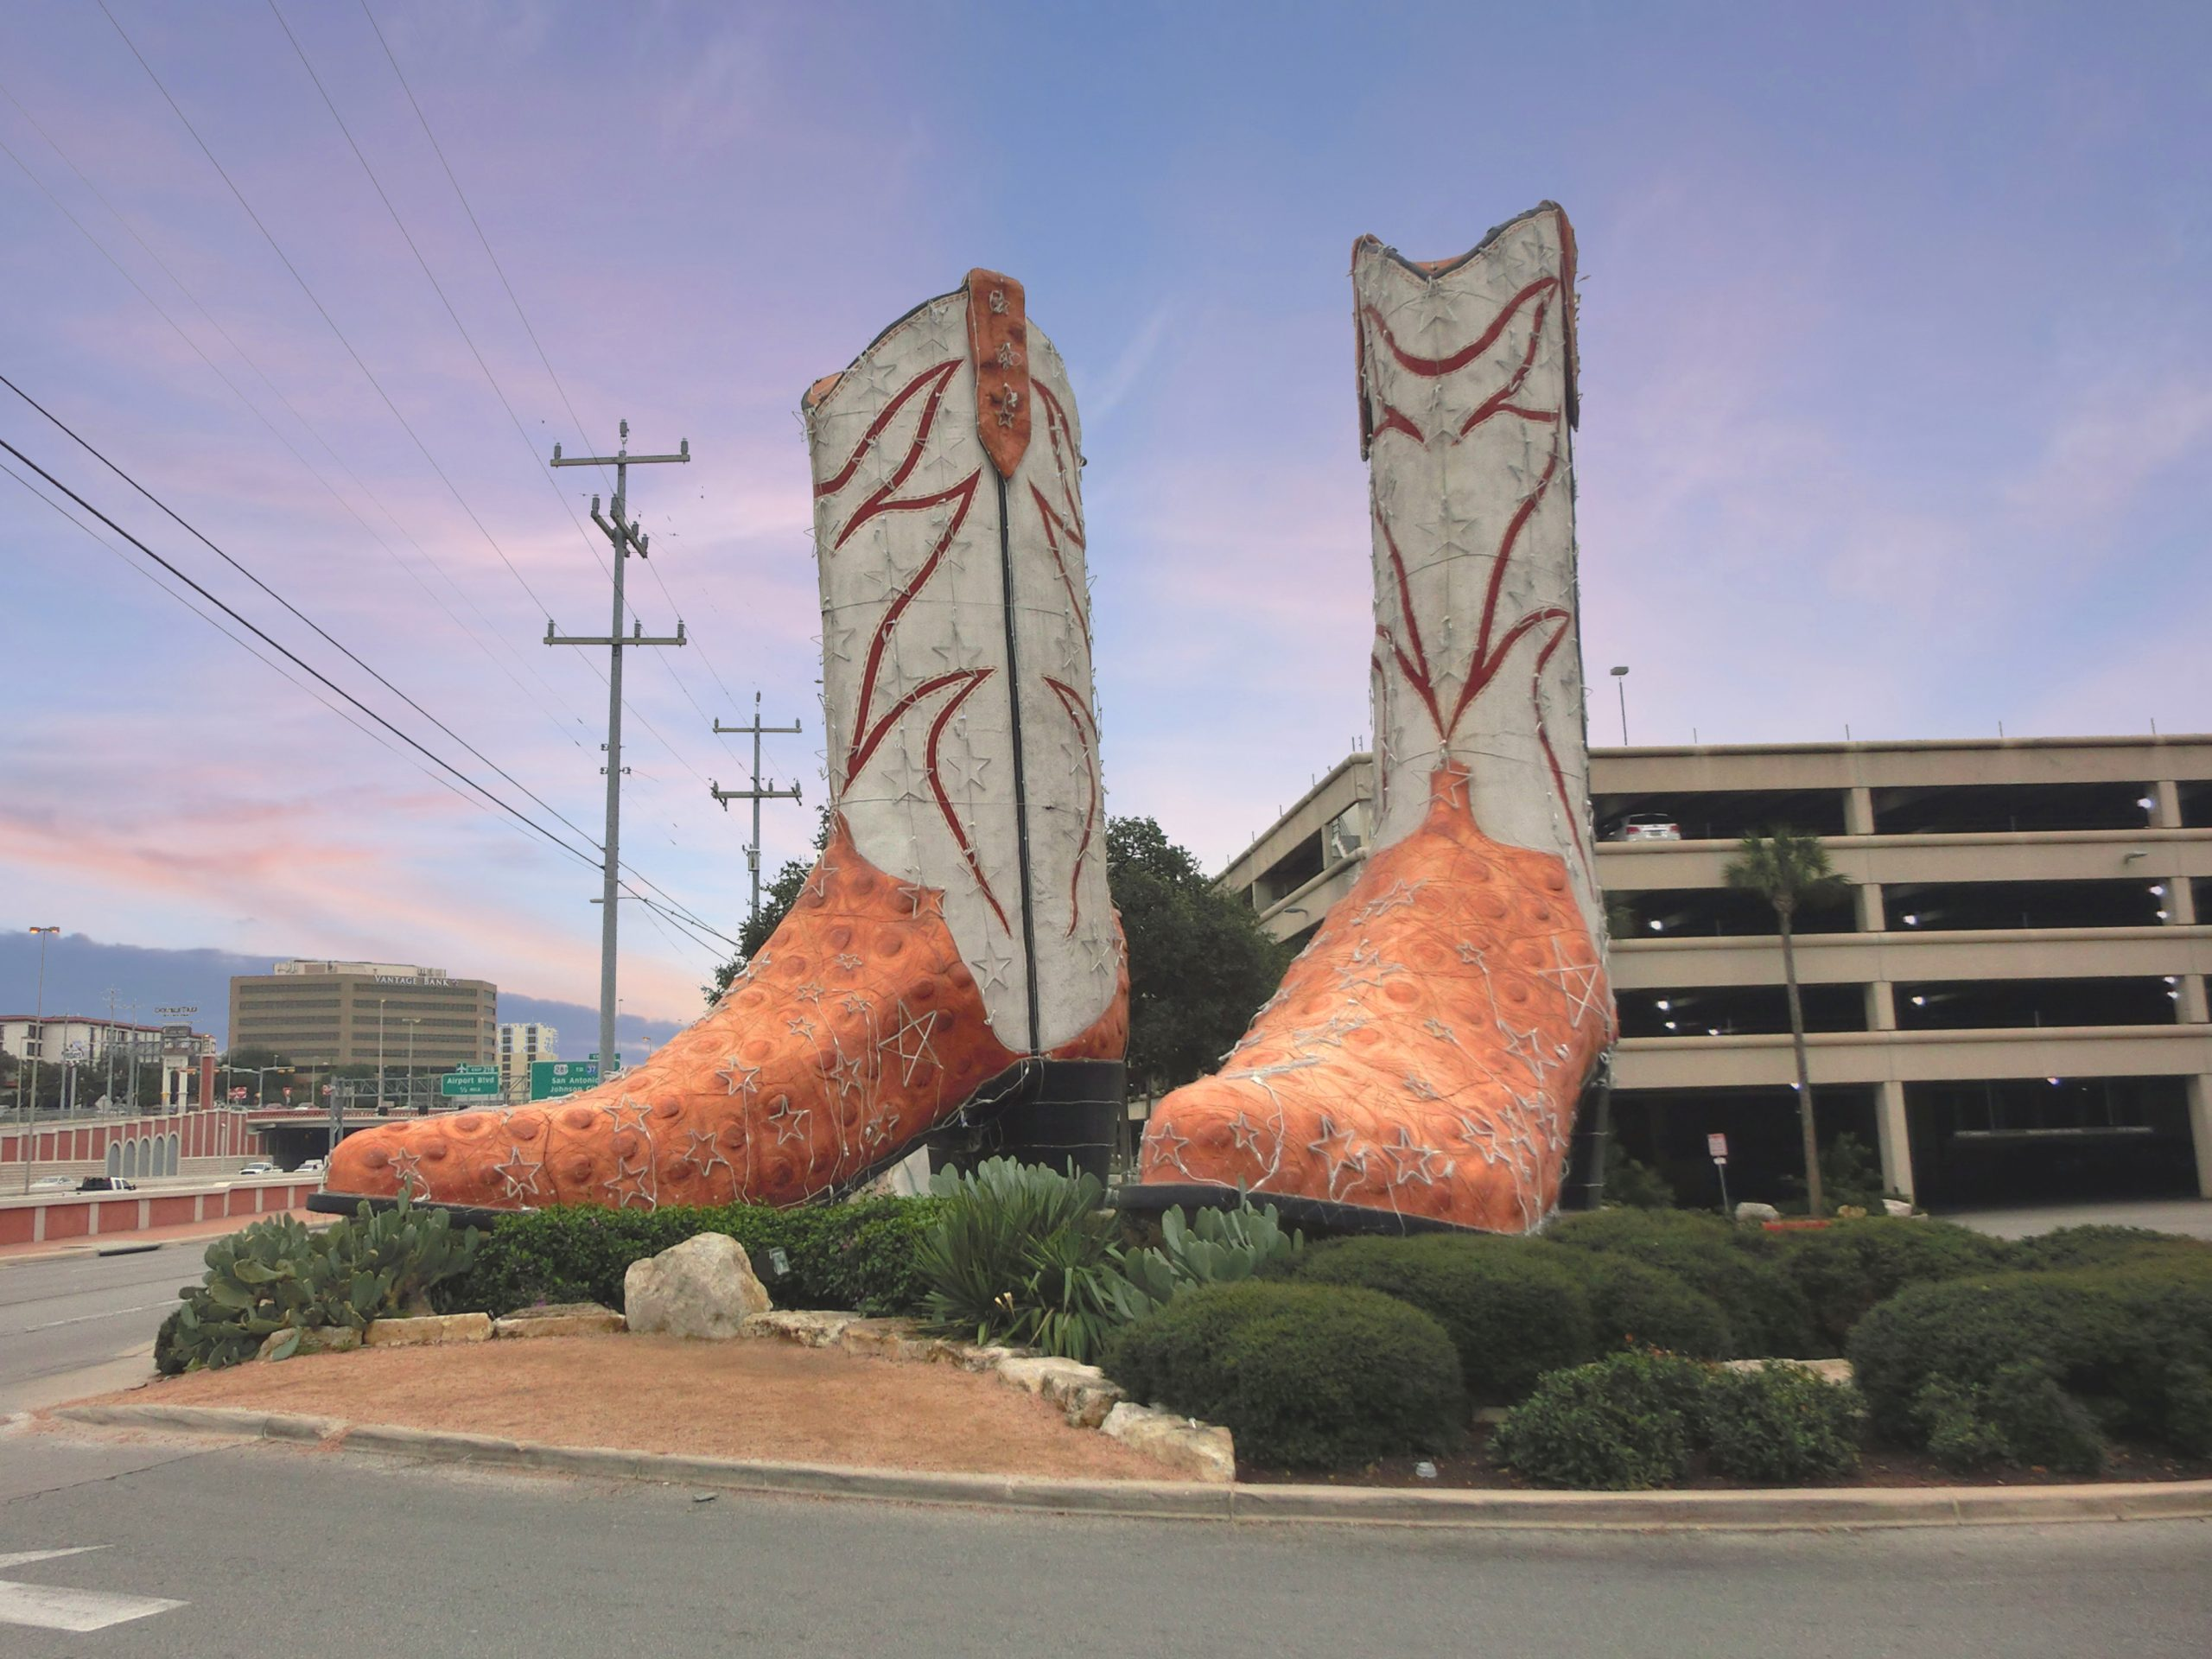 35-foot tall cowboy boots in front of north star mall san antonio, one of the weird roadside attractions in texas